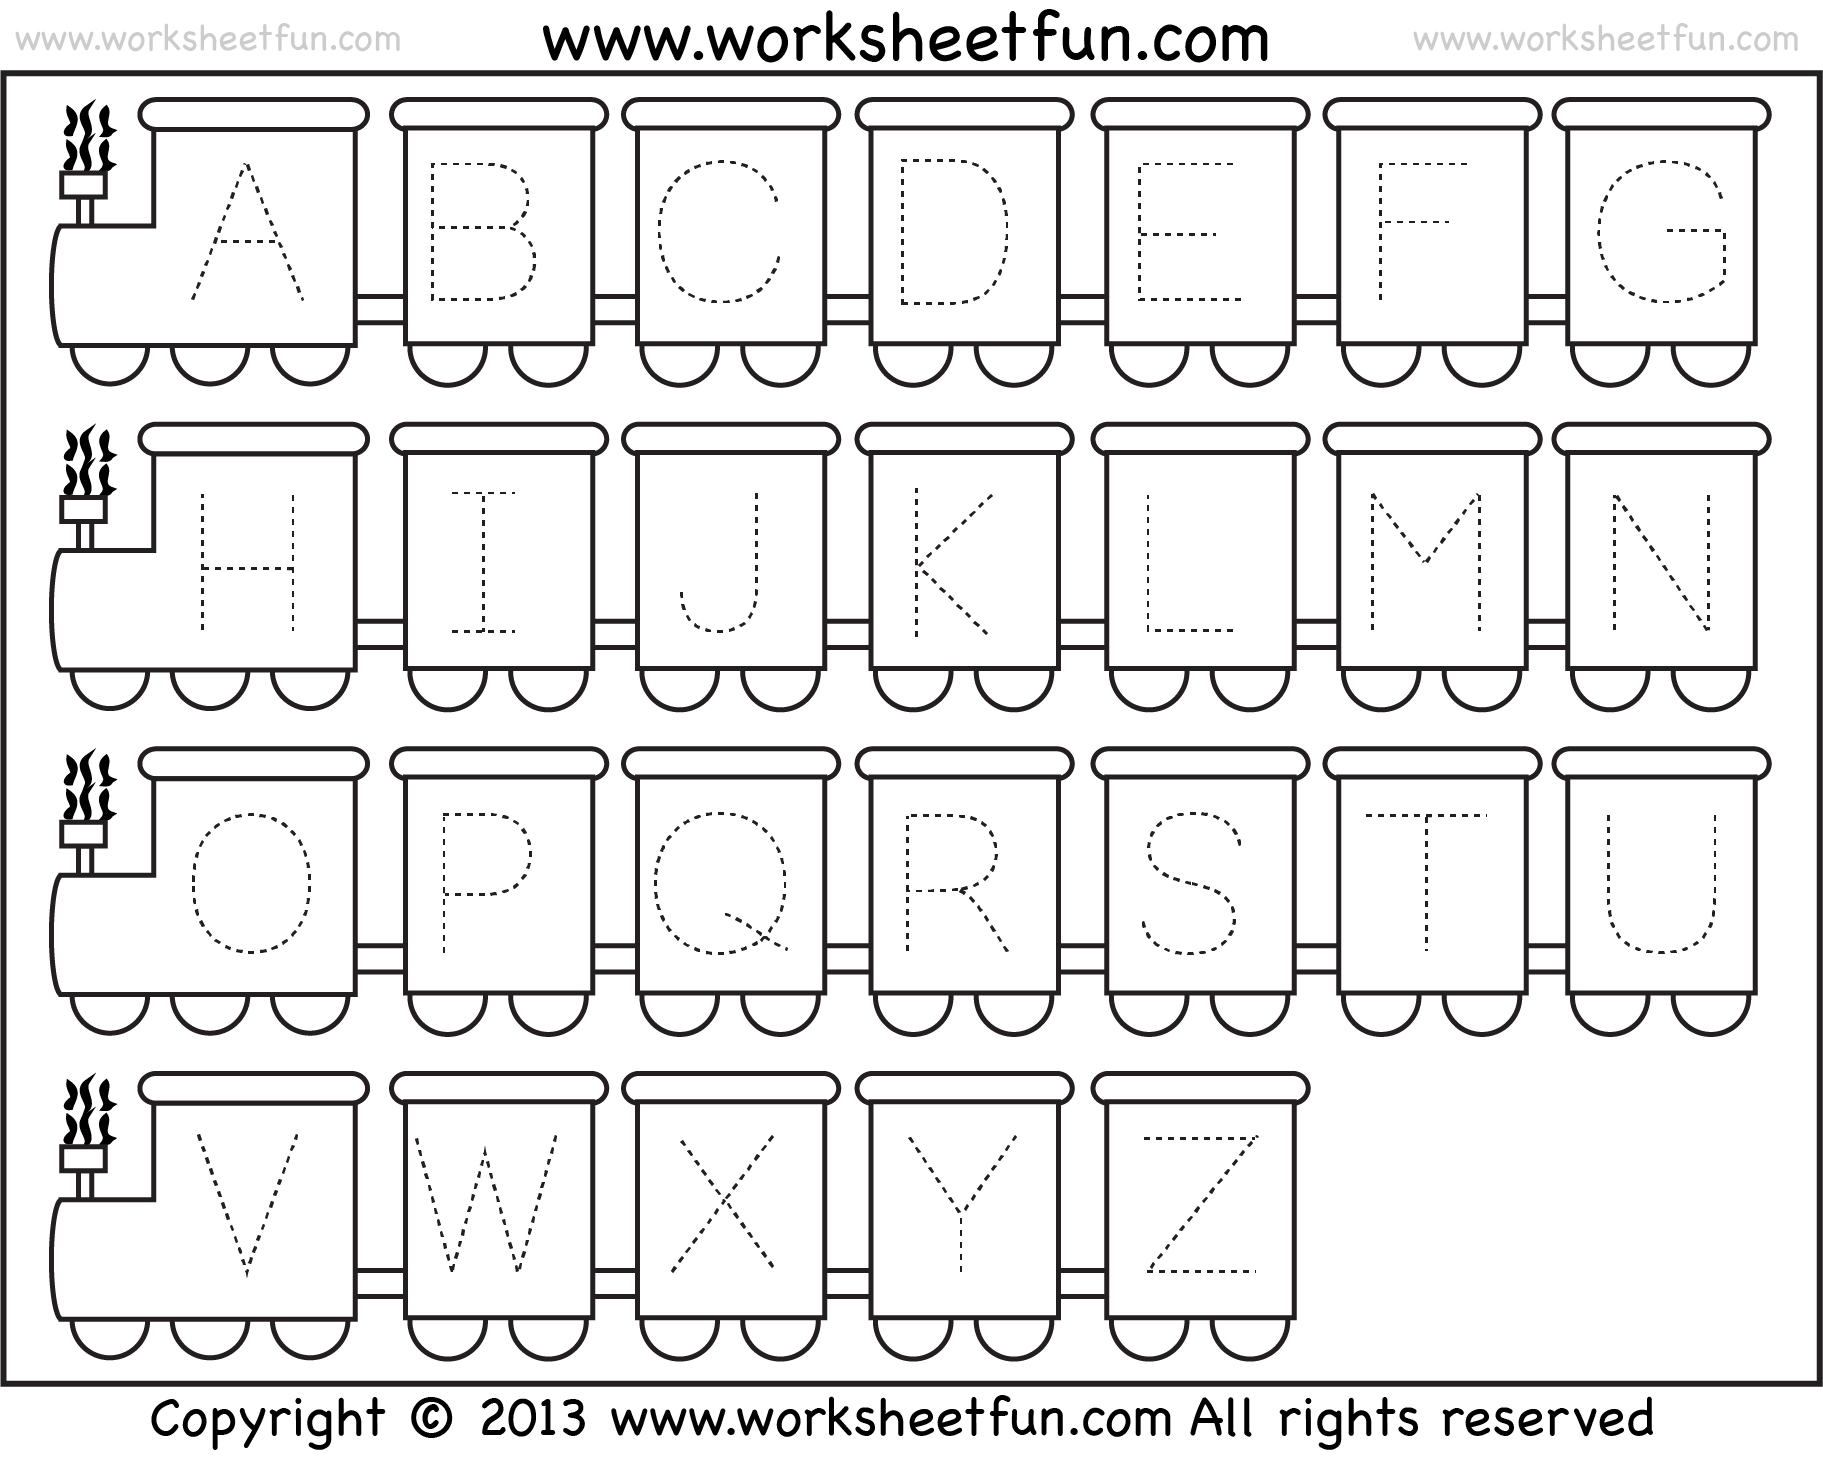 Worksheets Alphabet Worksheets For Preschool letter tracing worksheet train theme free printable worksheets tracing